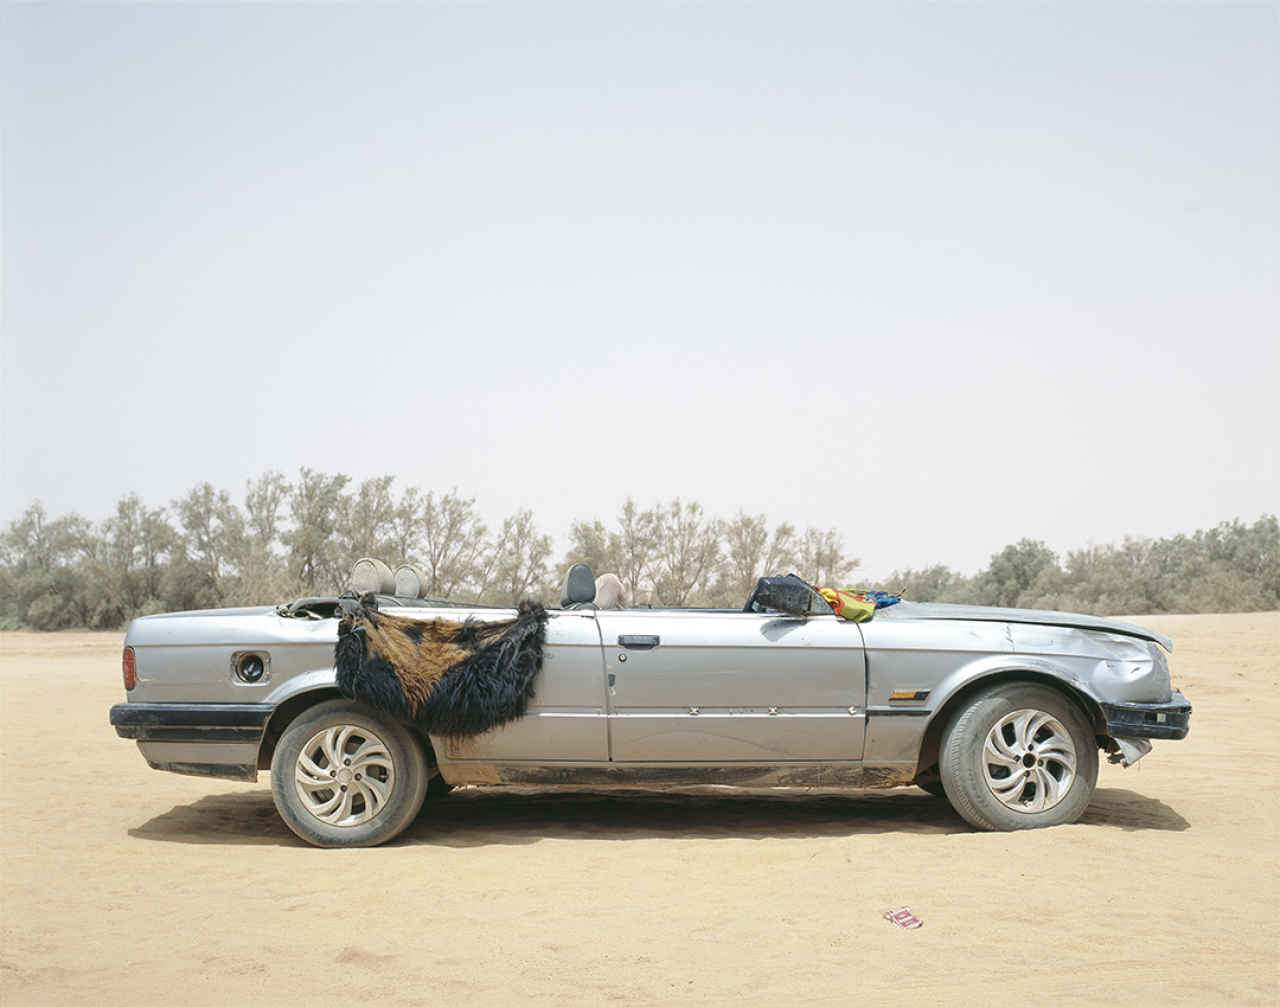 Philippe Dudouit, Ubari, Southern Libya 2, 2015. Tuareg tribal militia group vehicle. From the series,'THE DYNAMICS OF DUST' - The South Edition